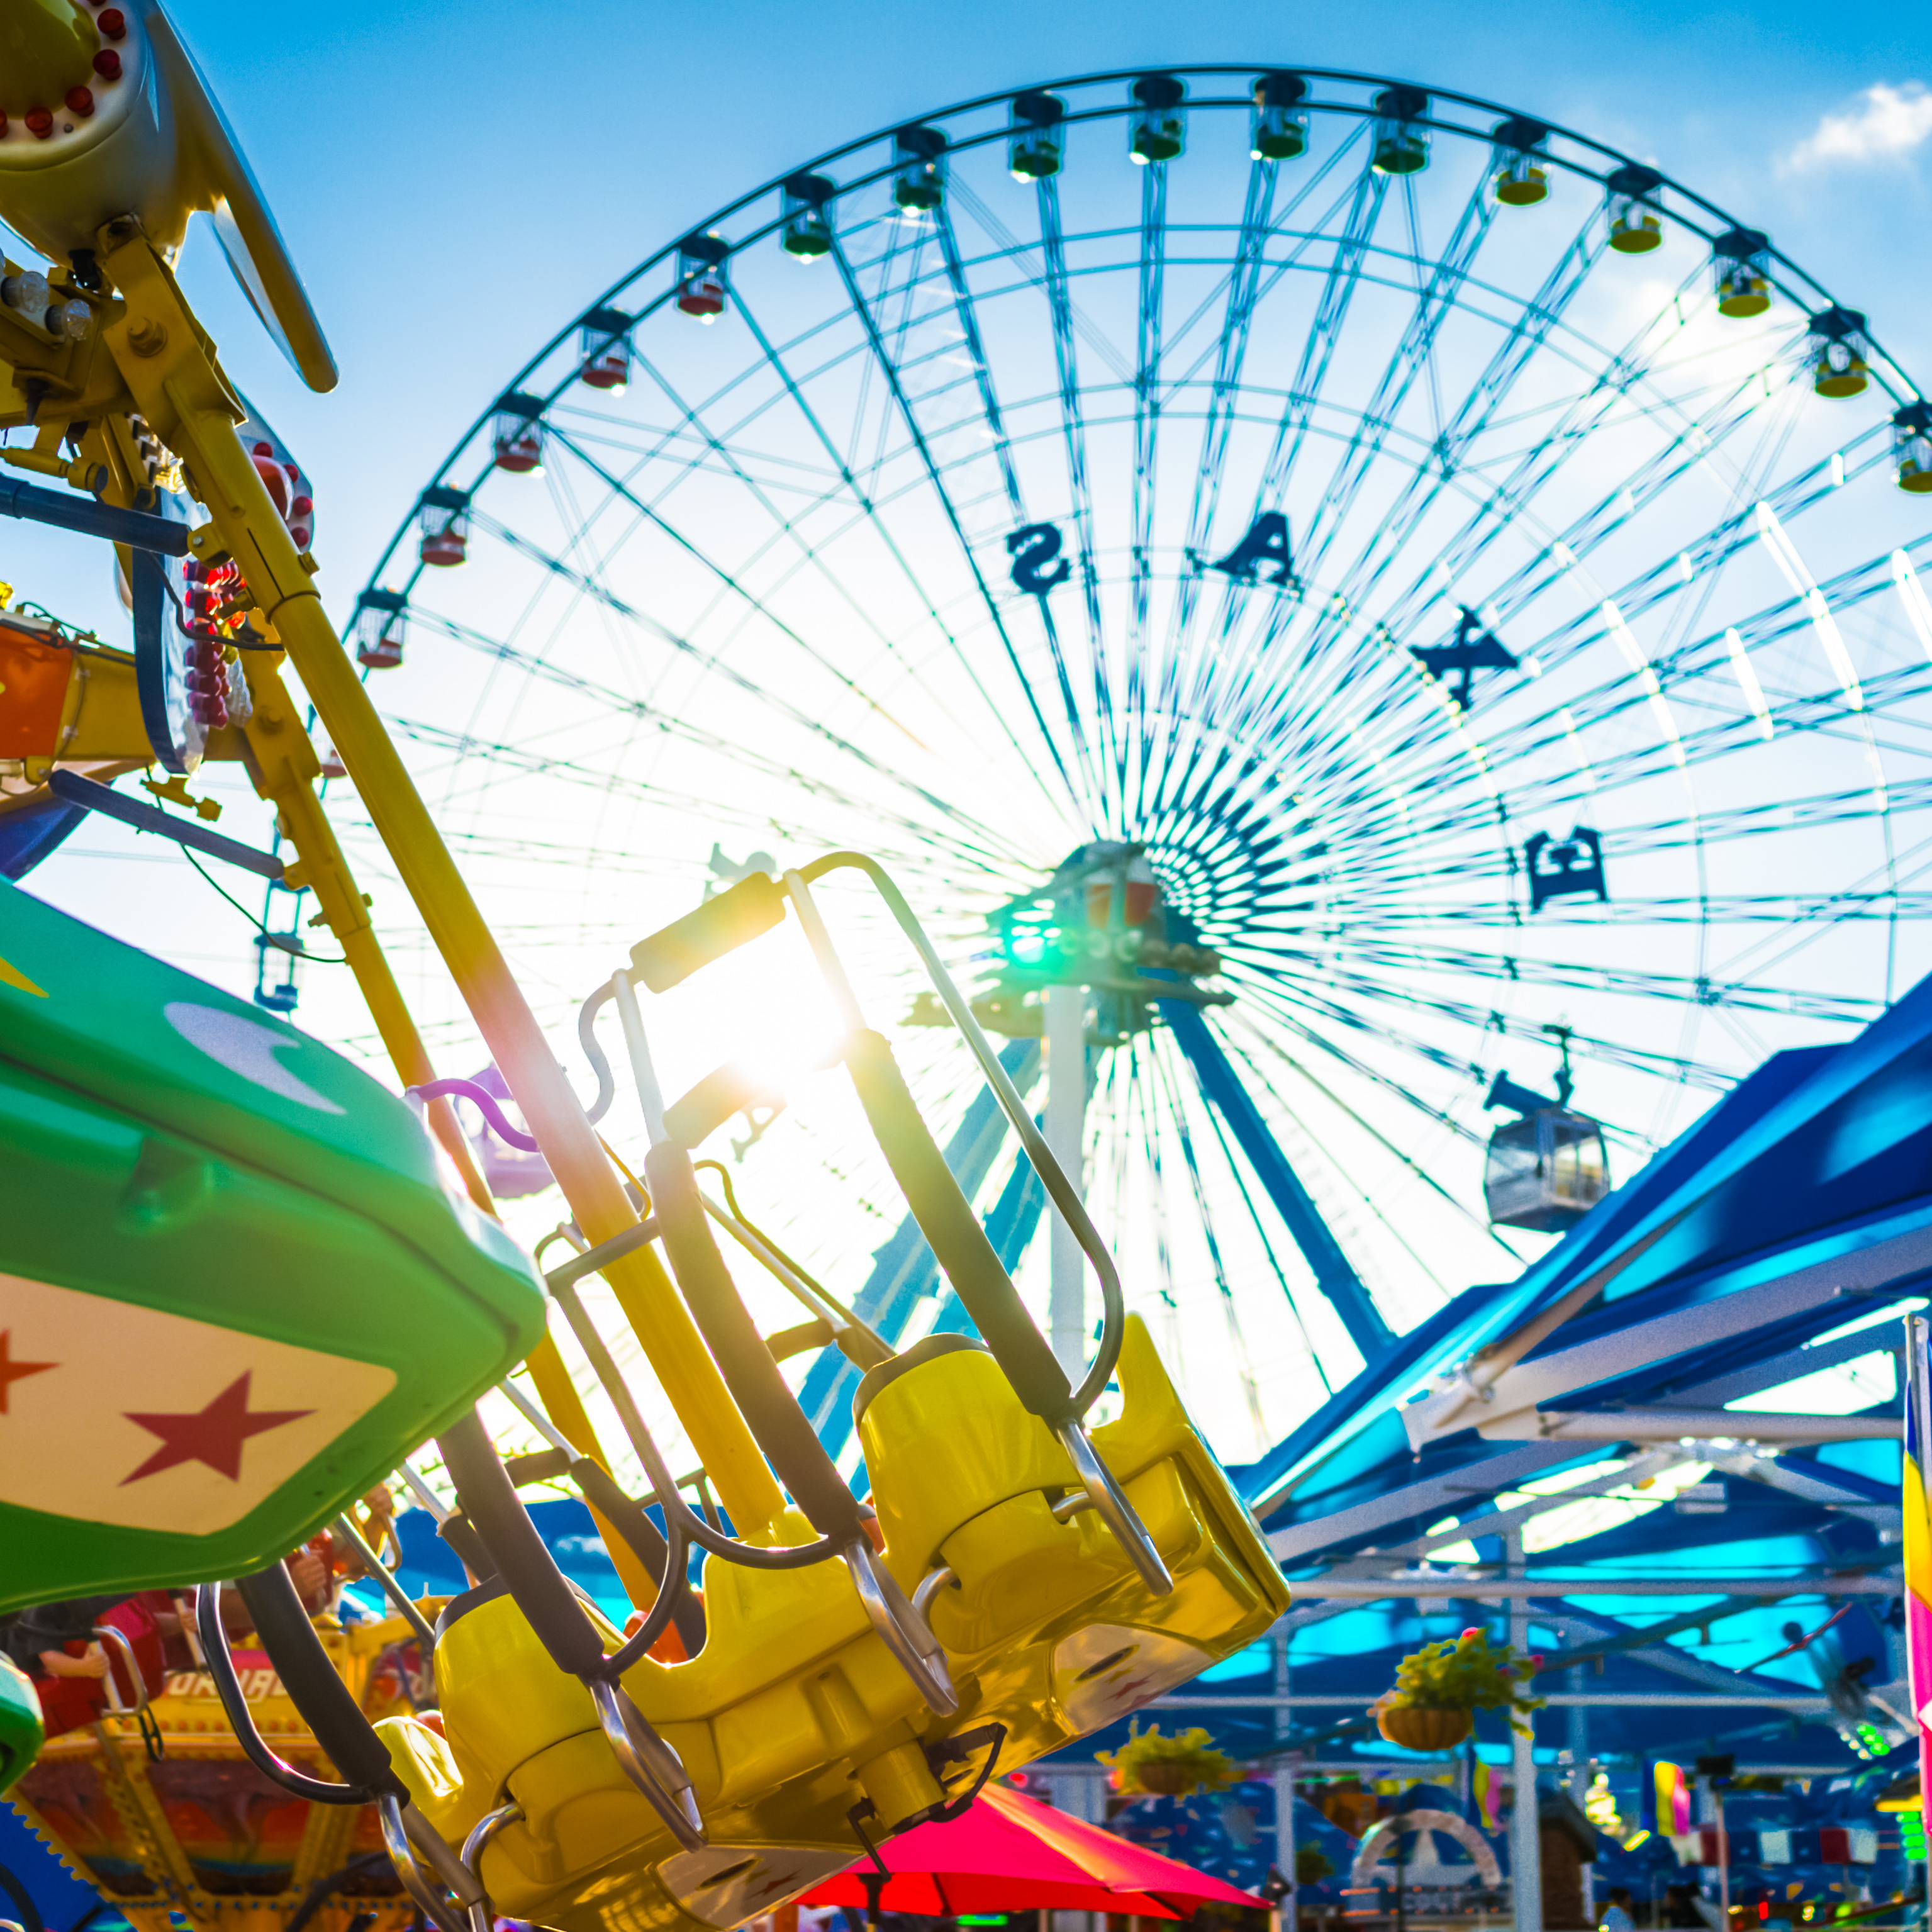 2020 State Fair Schedule: The Full List Of Cities And Dates For Florida State Fair Events Calendar